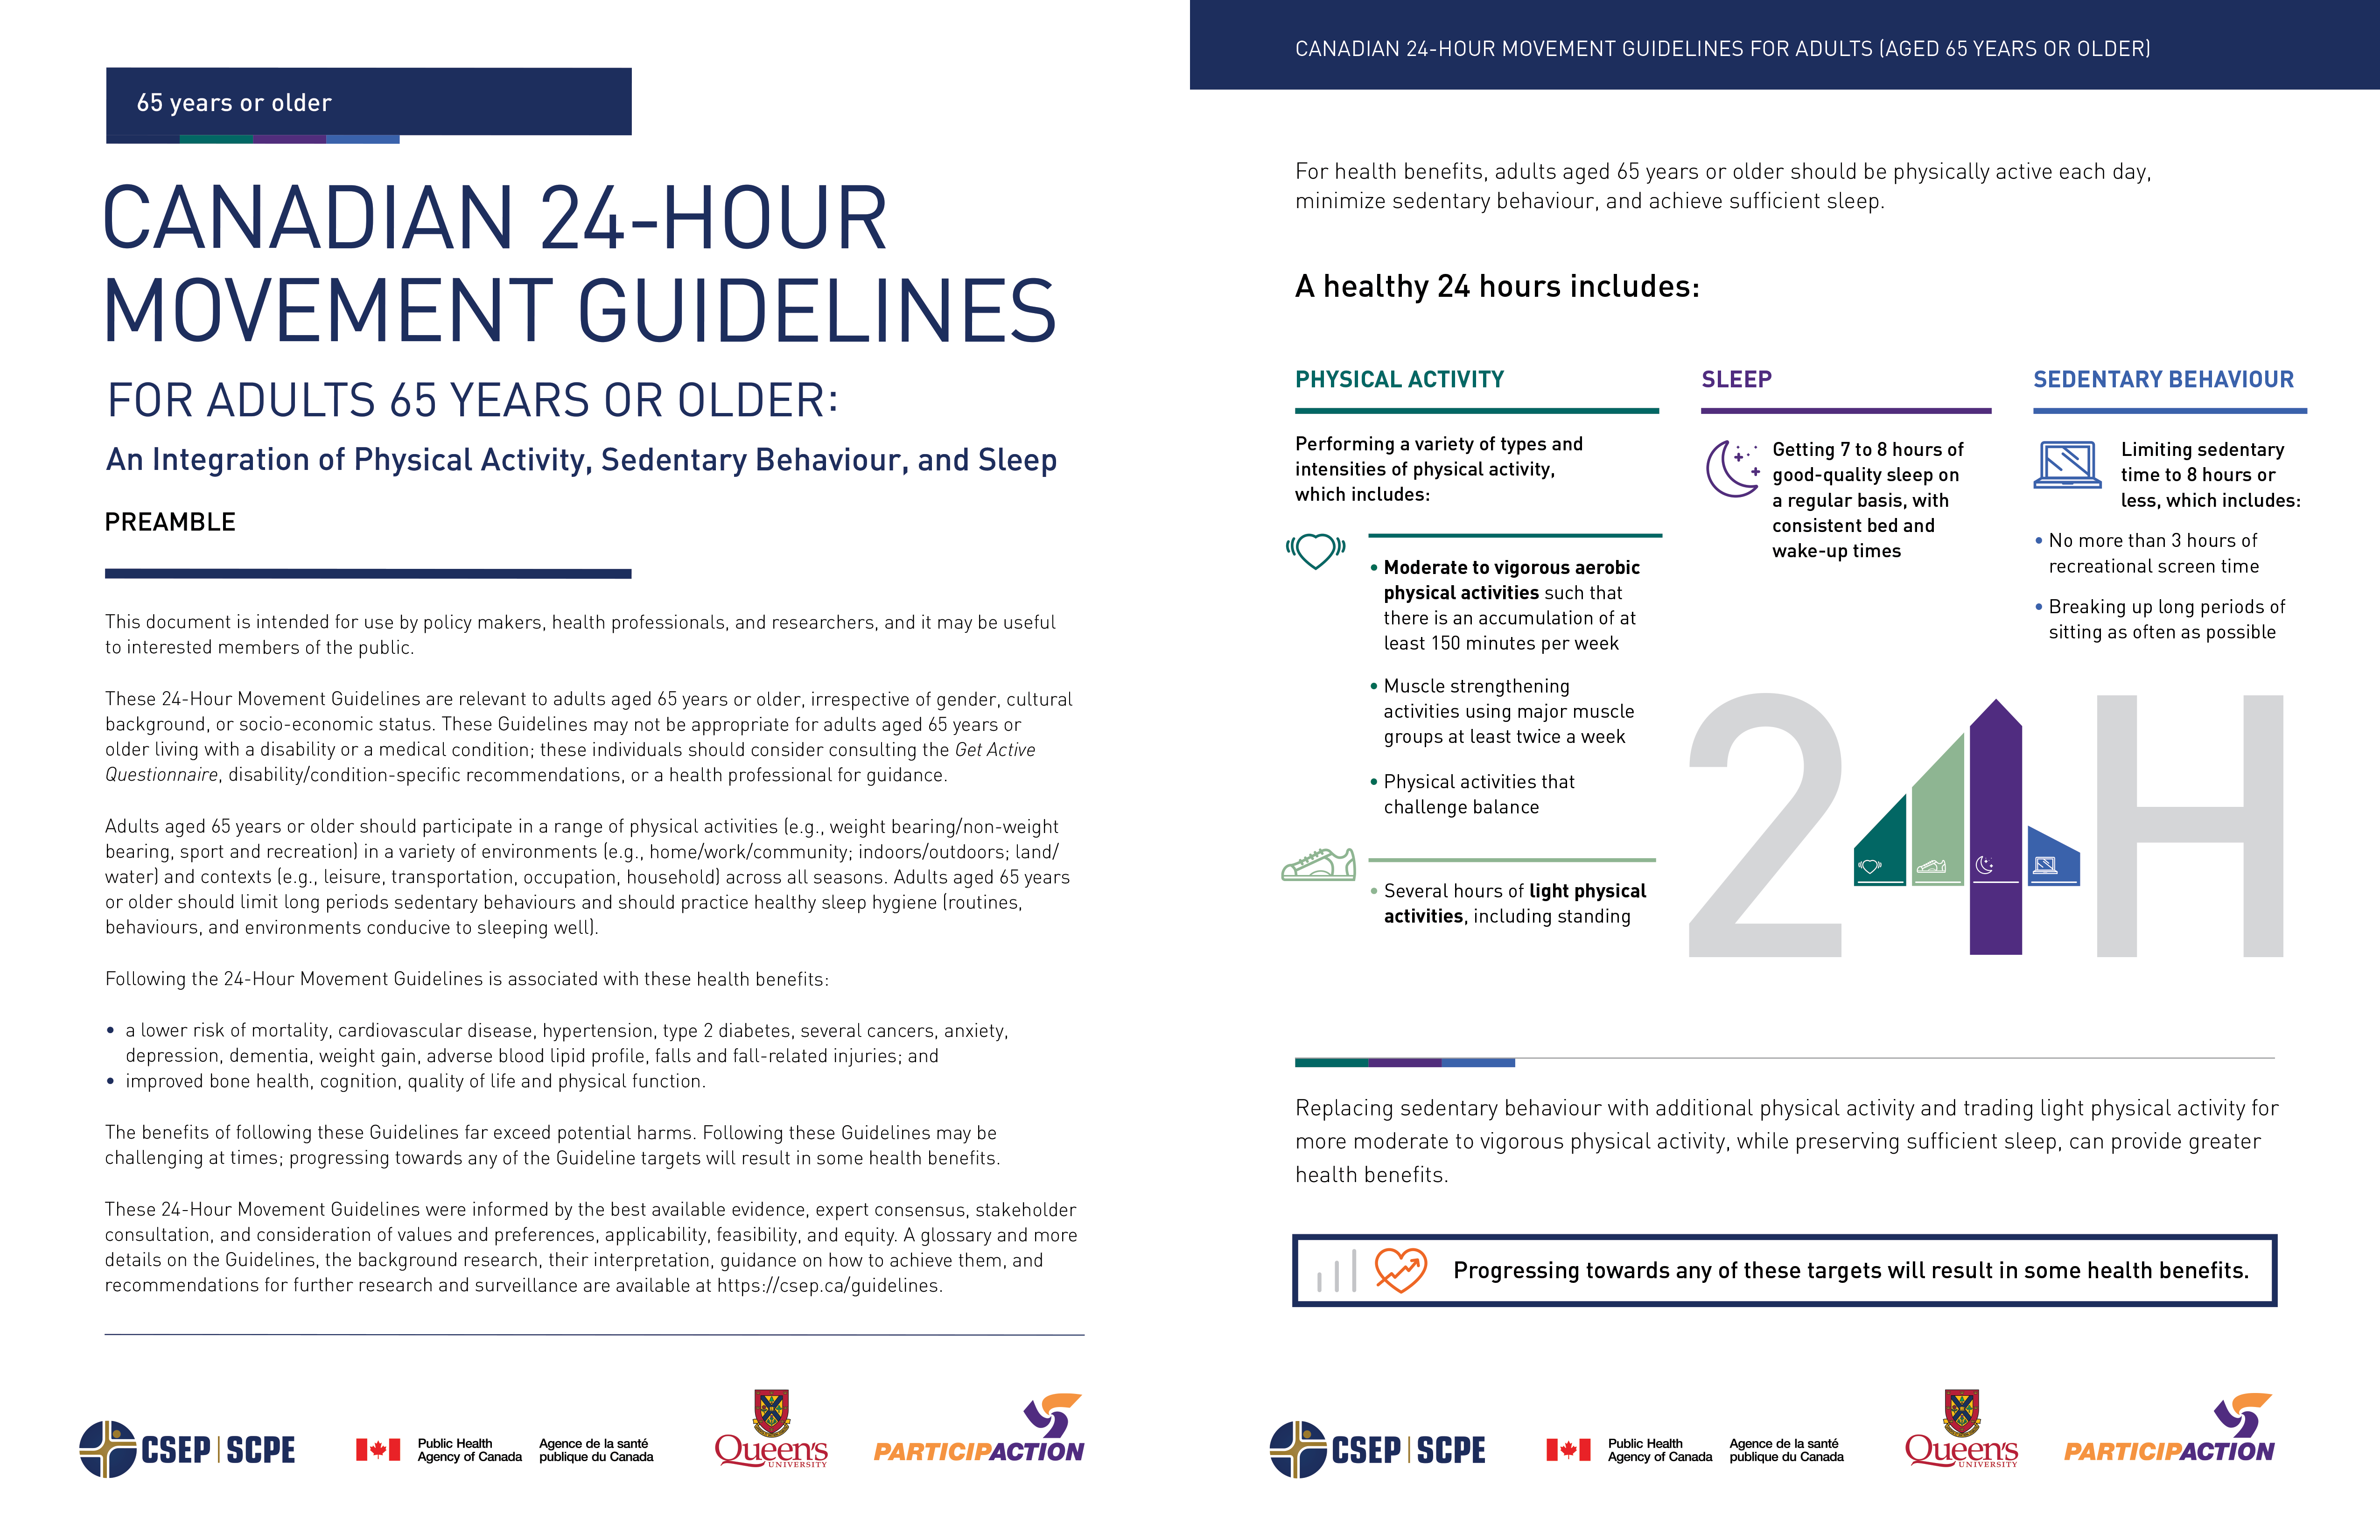 Download Guidelines for Adults 65 years and over